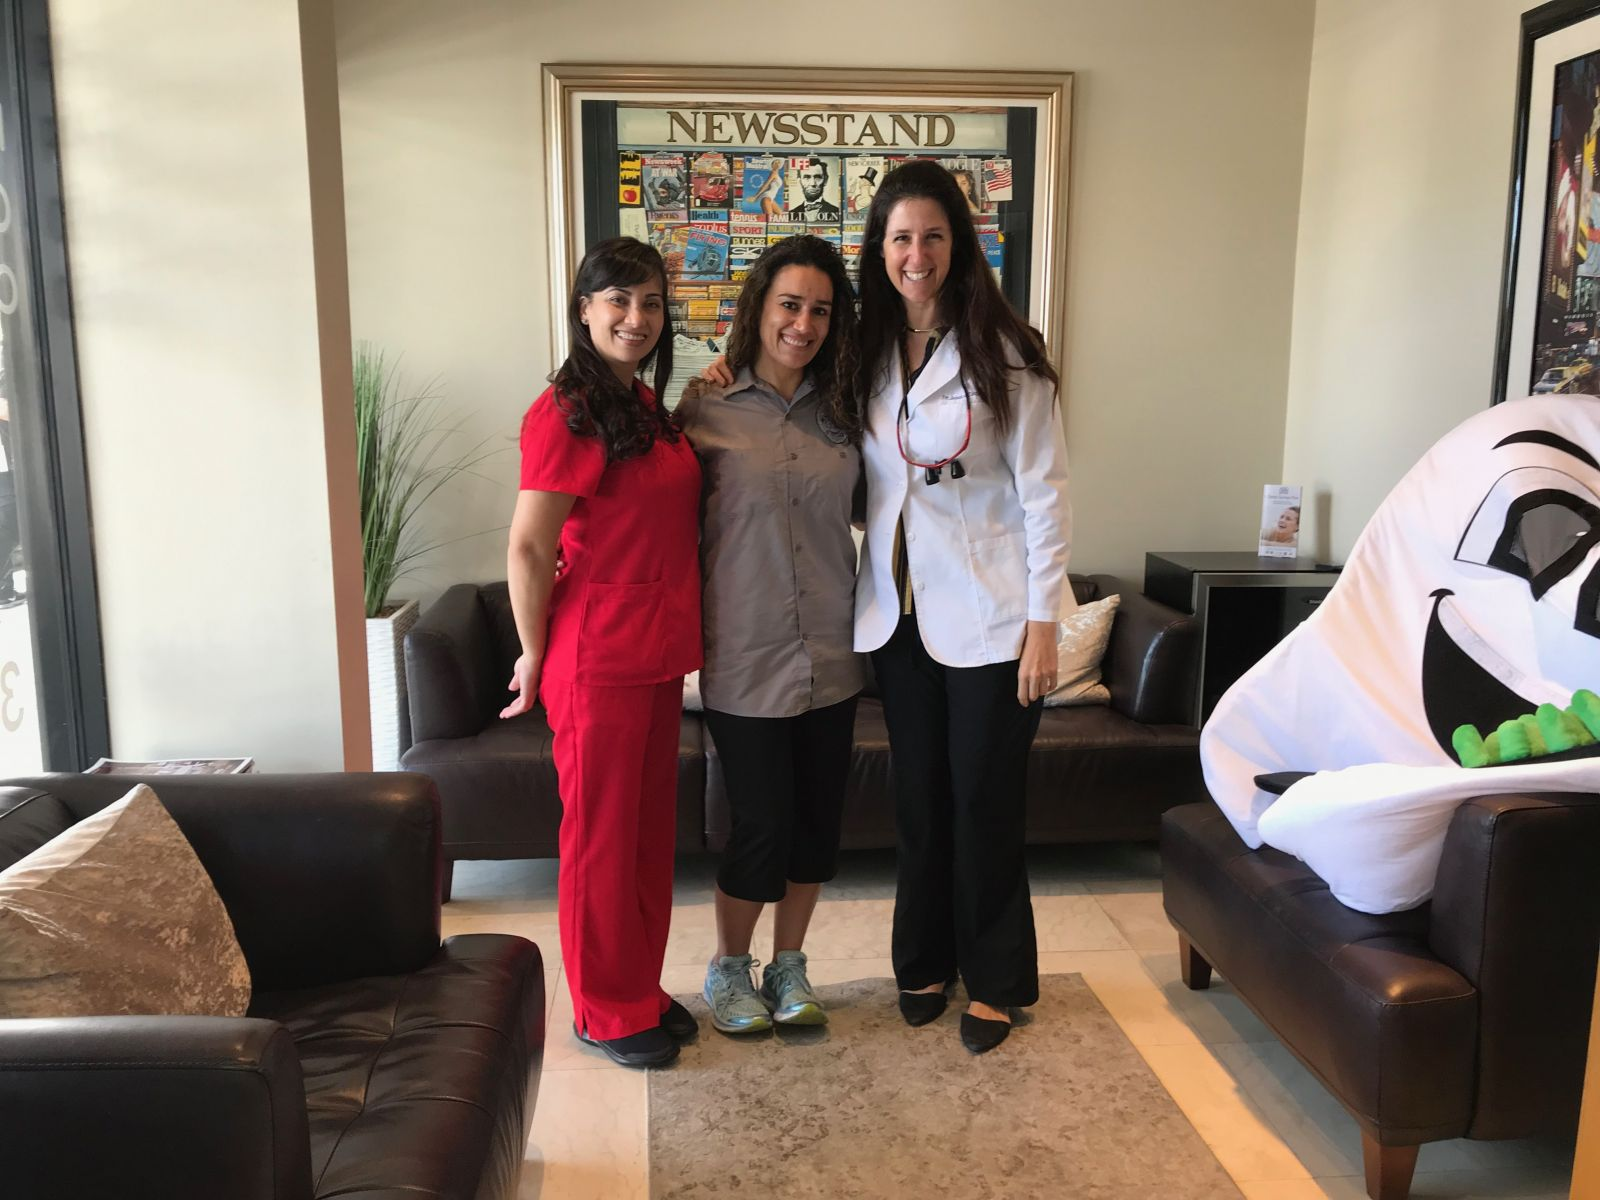 Another happy patient at Aventura Dental Group. In this photo is our amazing Registered dental hygienist Yina Diaz with Dr. Jessica Cismas and our happy patient of the day. We are accepting new and existing patients at our Aventura location. We are conveniently located in the Promenade Shops in between Boul MIch and Sicillian Oven restaurant. If you are interested in getting an oral examination or just to get your teeth an amazing cleaning do not hesitate to contact us via DM or website. You can also call us to book your complimentary consultation. Do not delay, CALL Today!